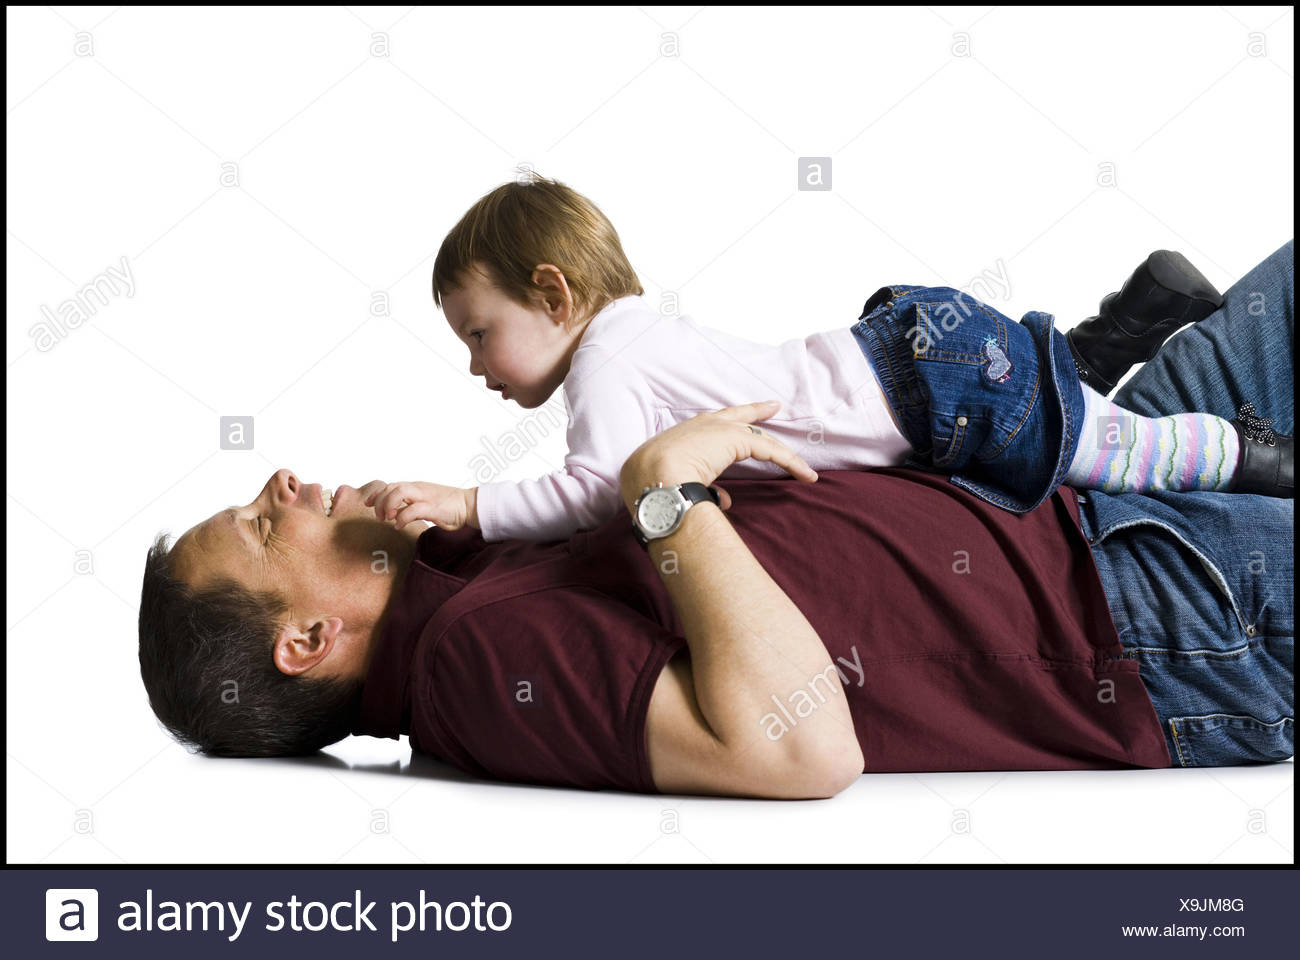 Side profile of man with baby girl snuggling - Stock Image